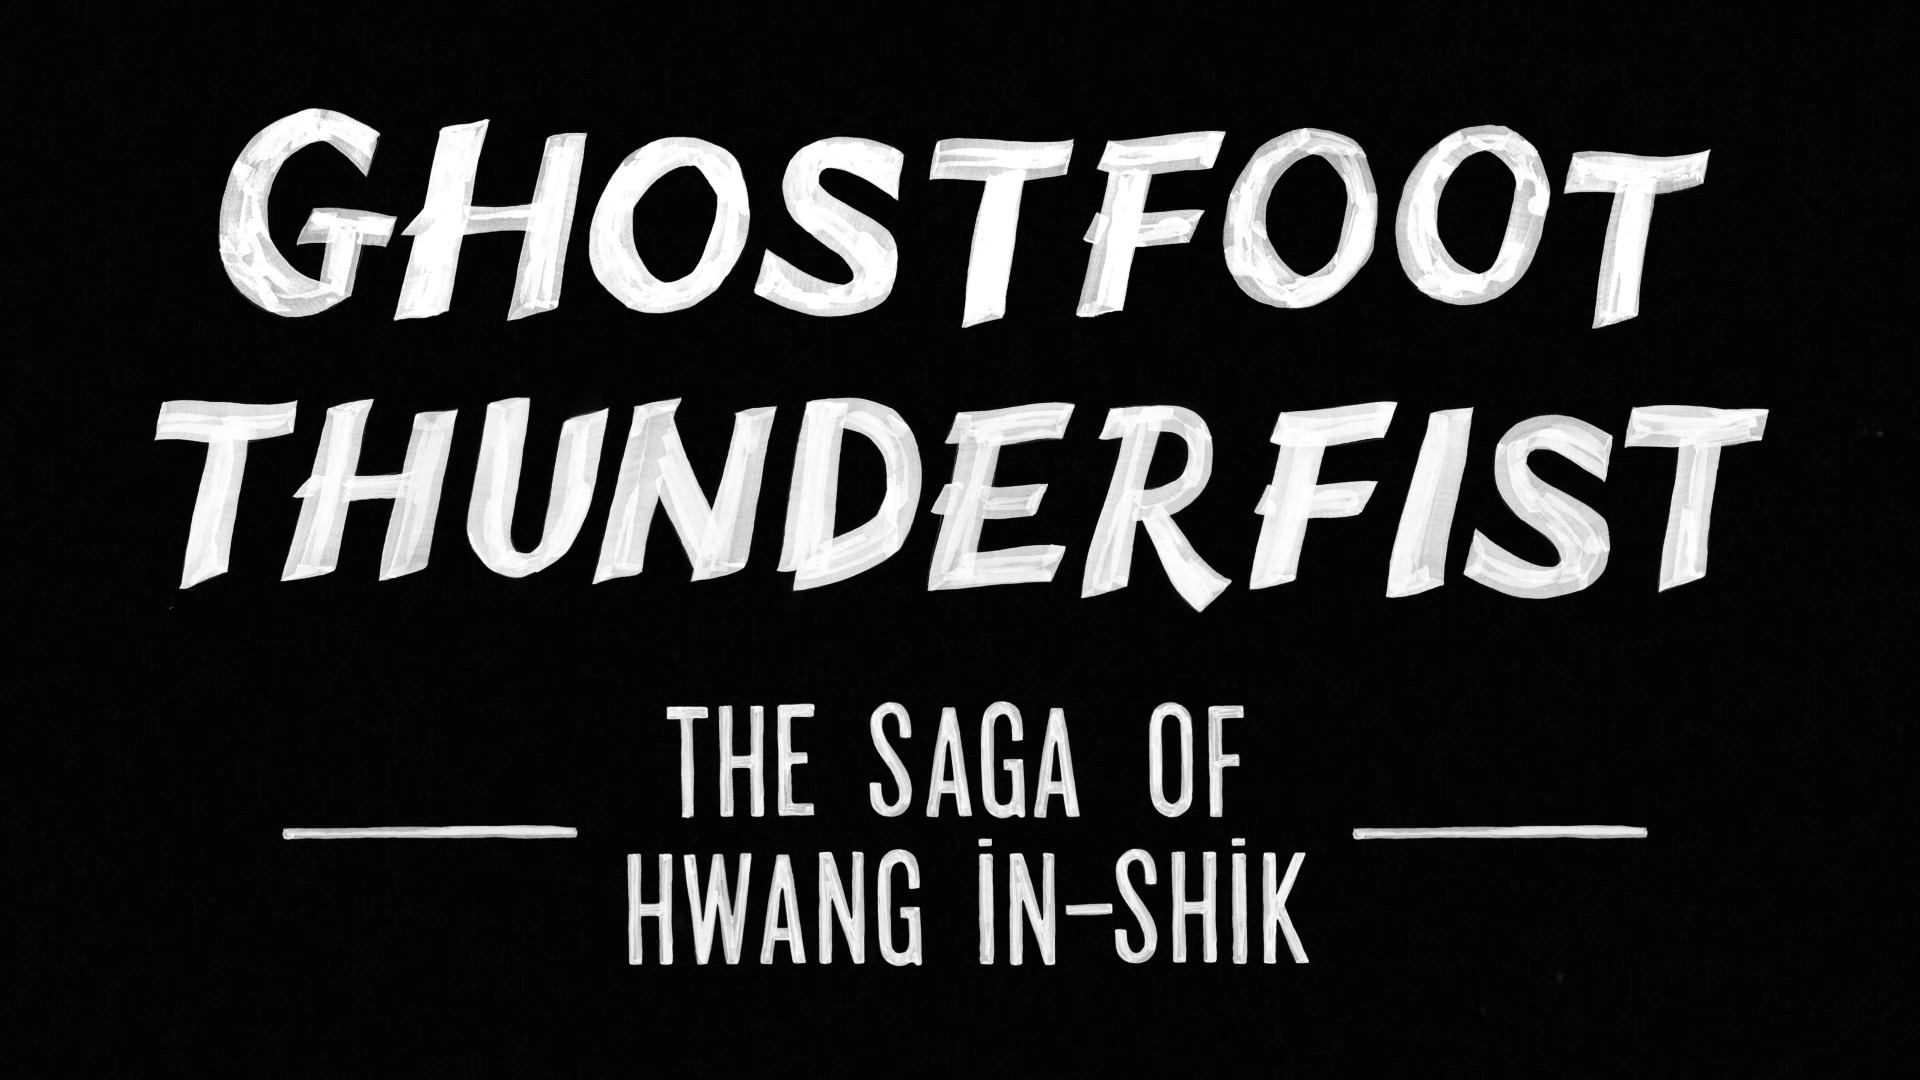 Ghostfoot Thunderfist: The Sage of Hwang in Shik